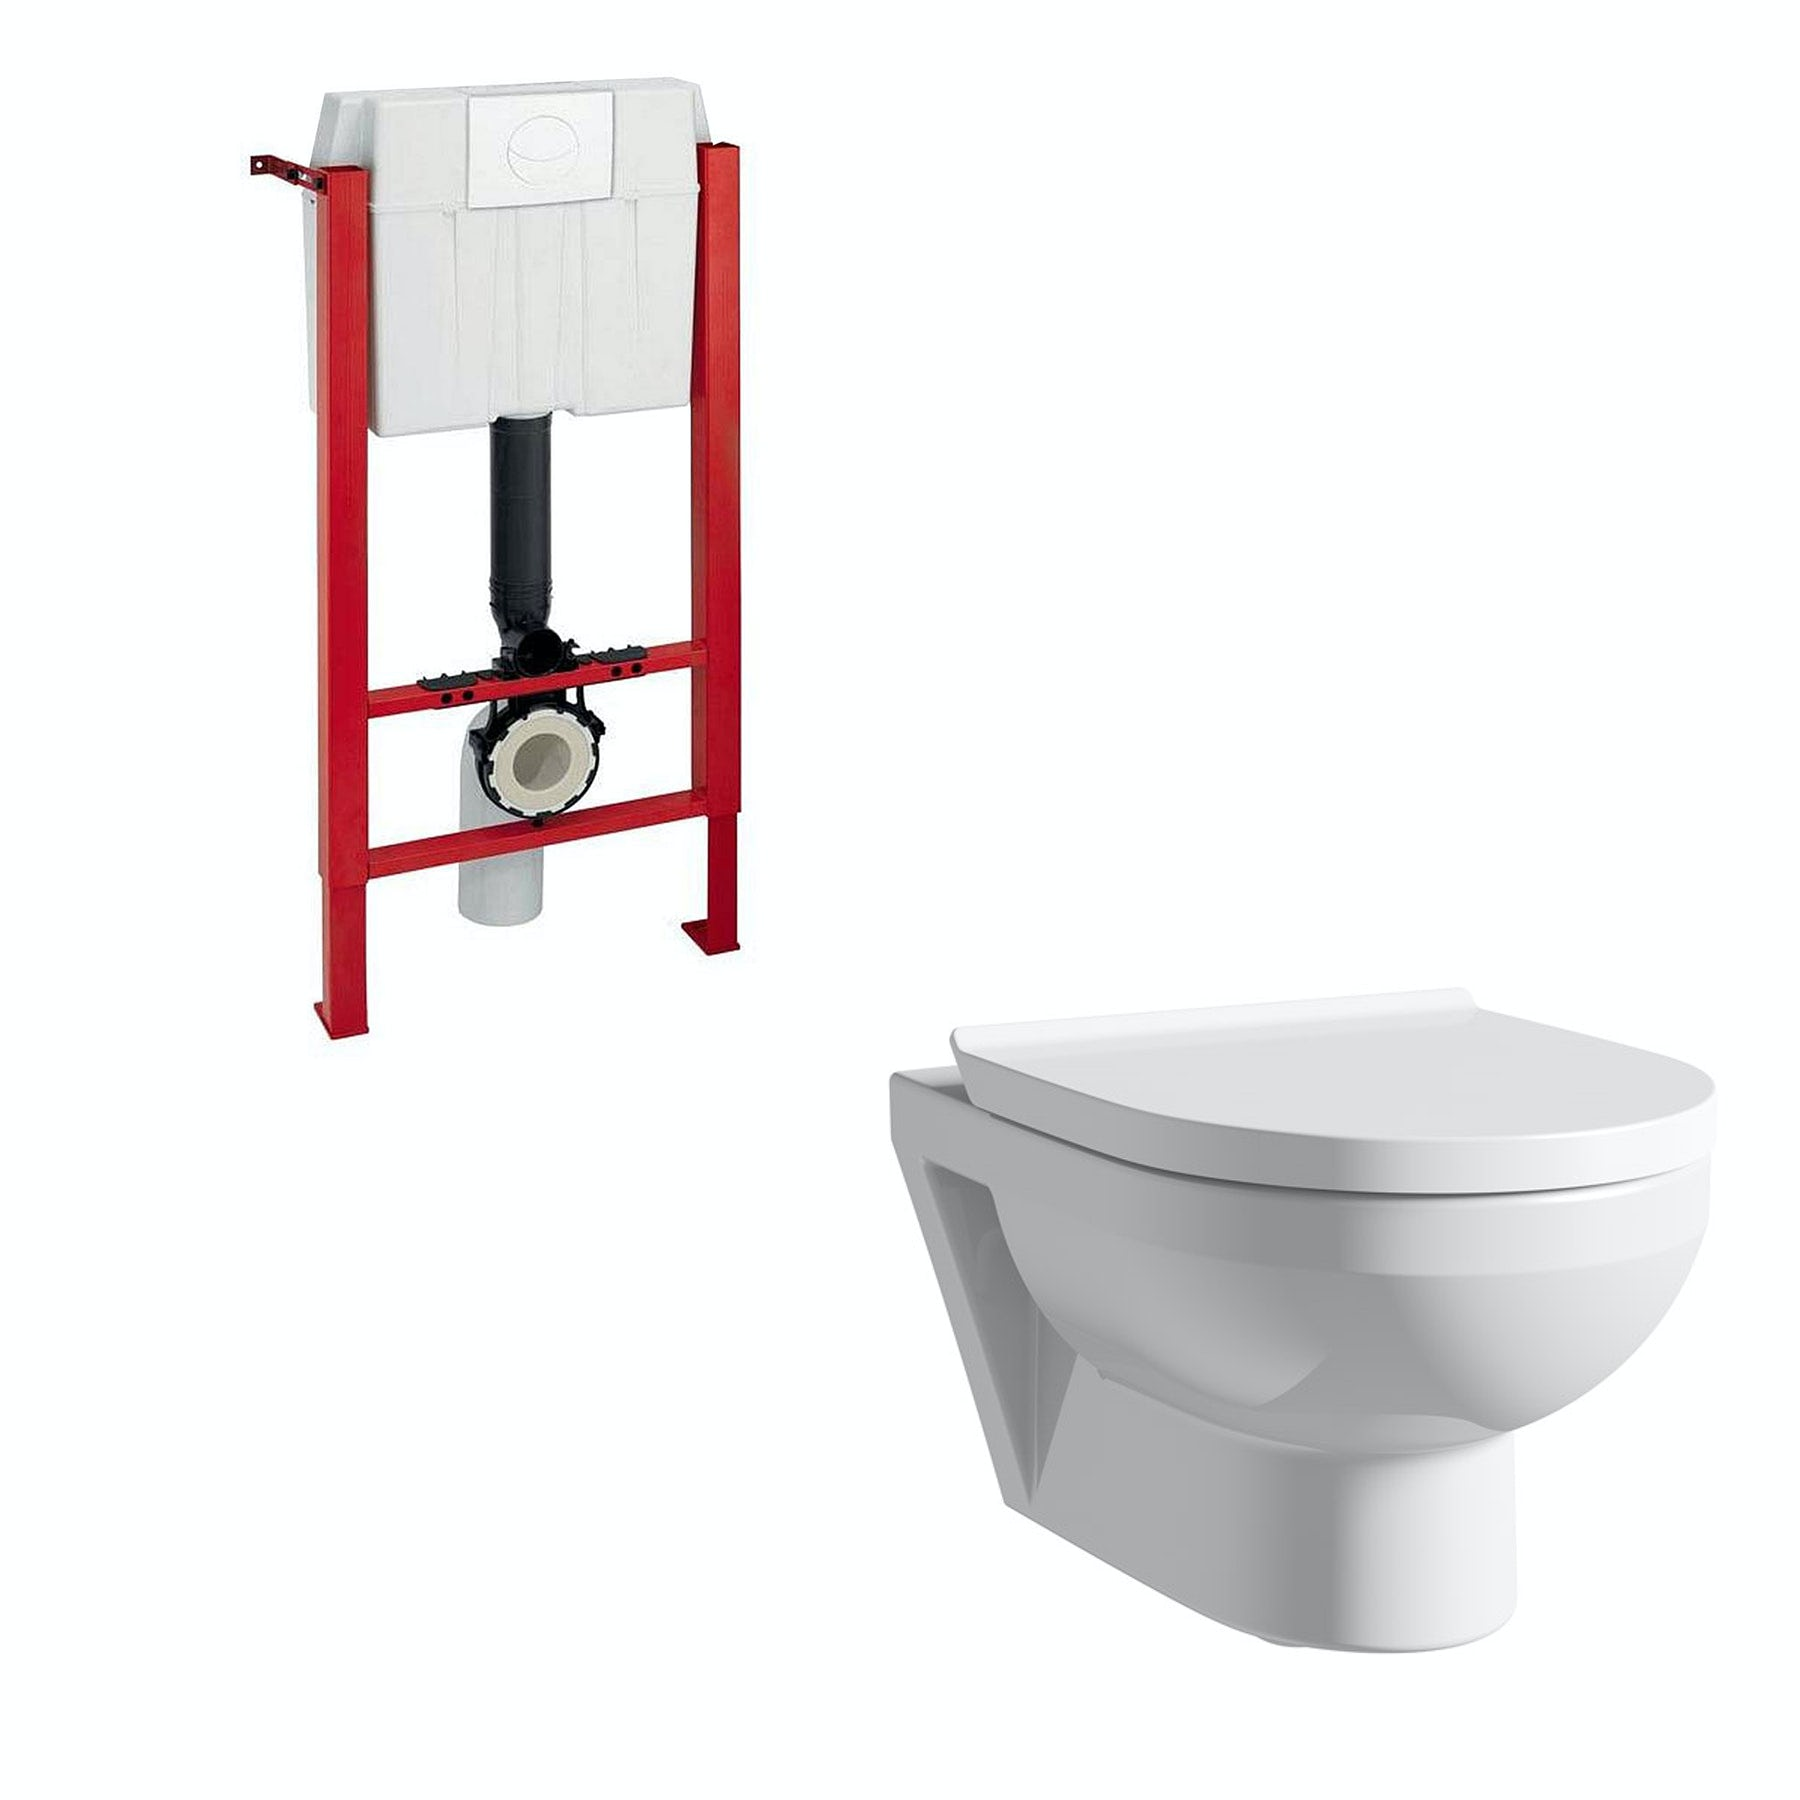 Duravit Durastyle Basic rimless wall hung toilet with soft close seat, wall mounting frame and chrome push plate